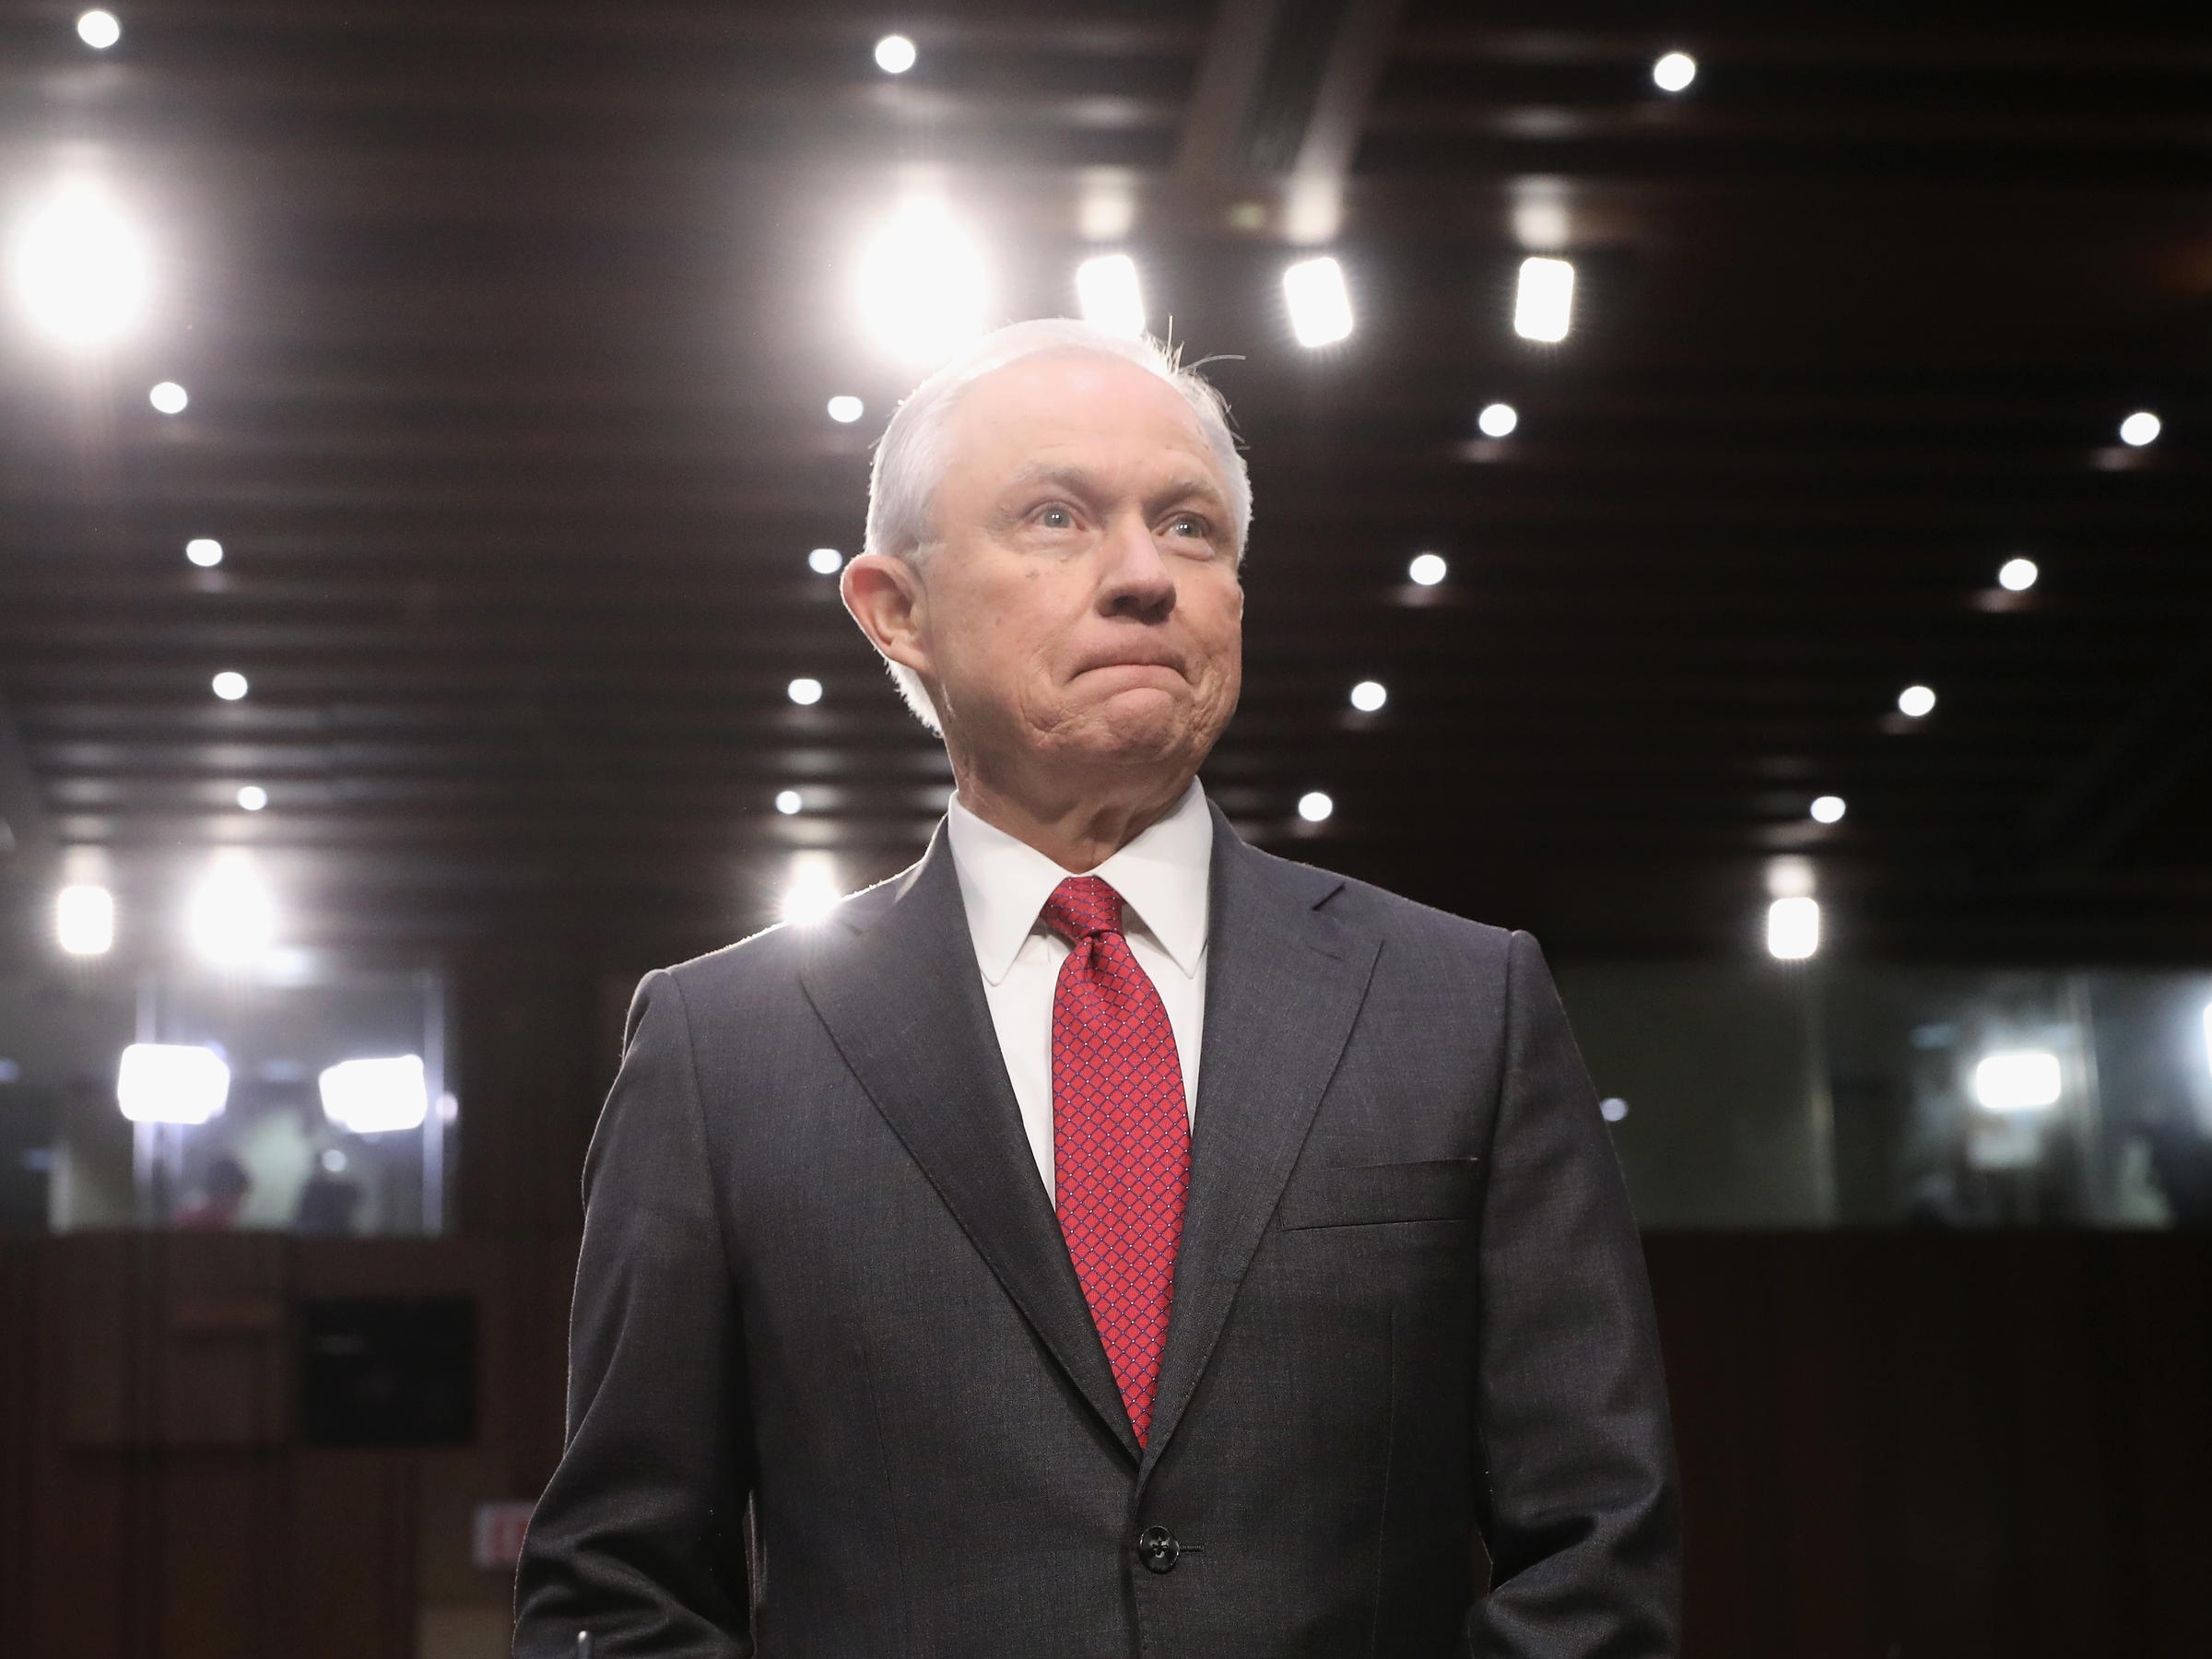 Sessions: Russia link claims a detestable lie